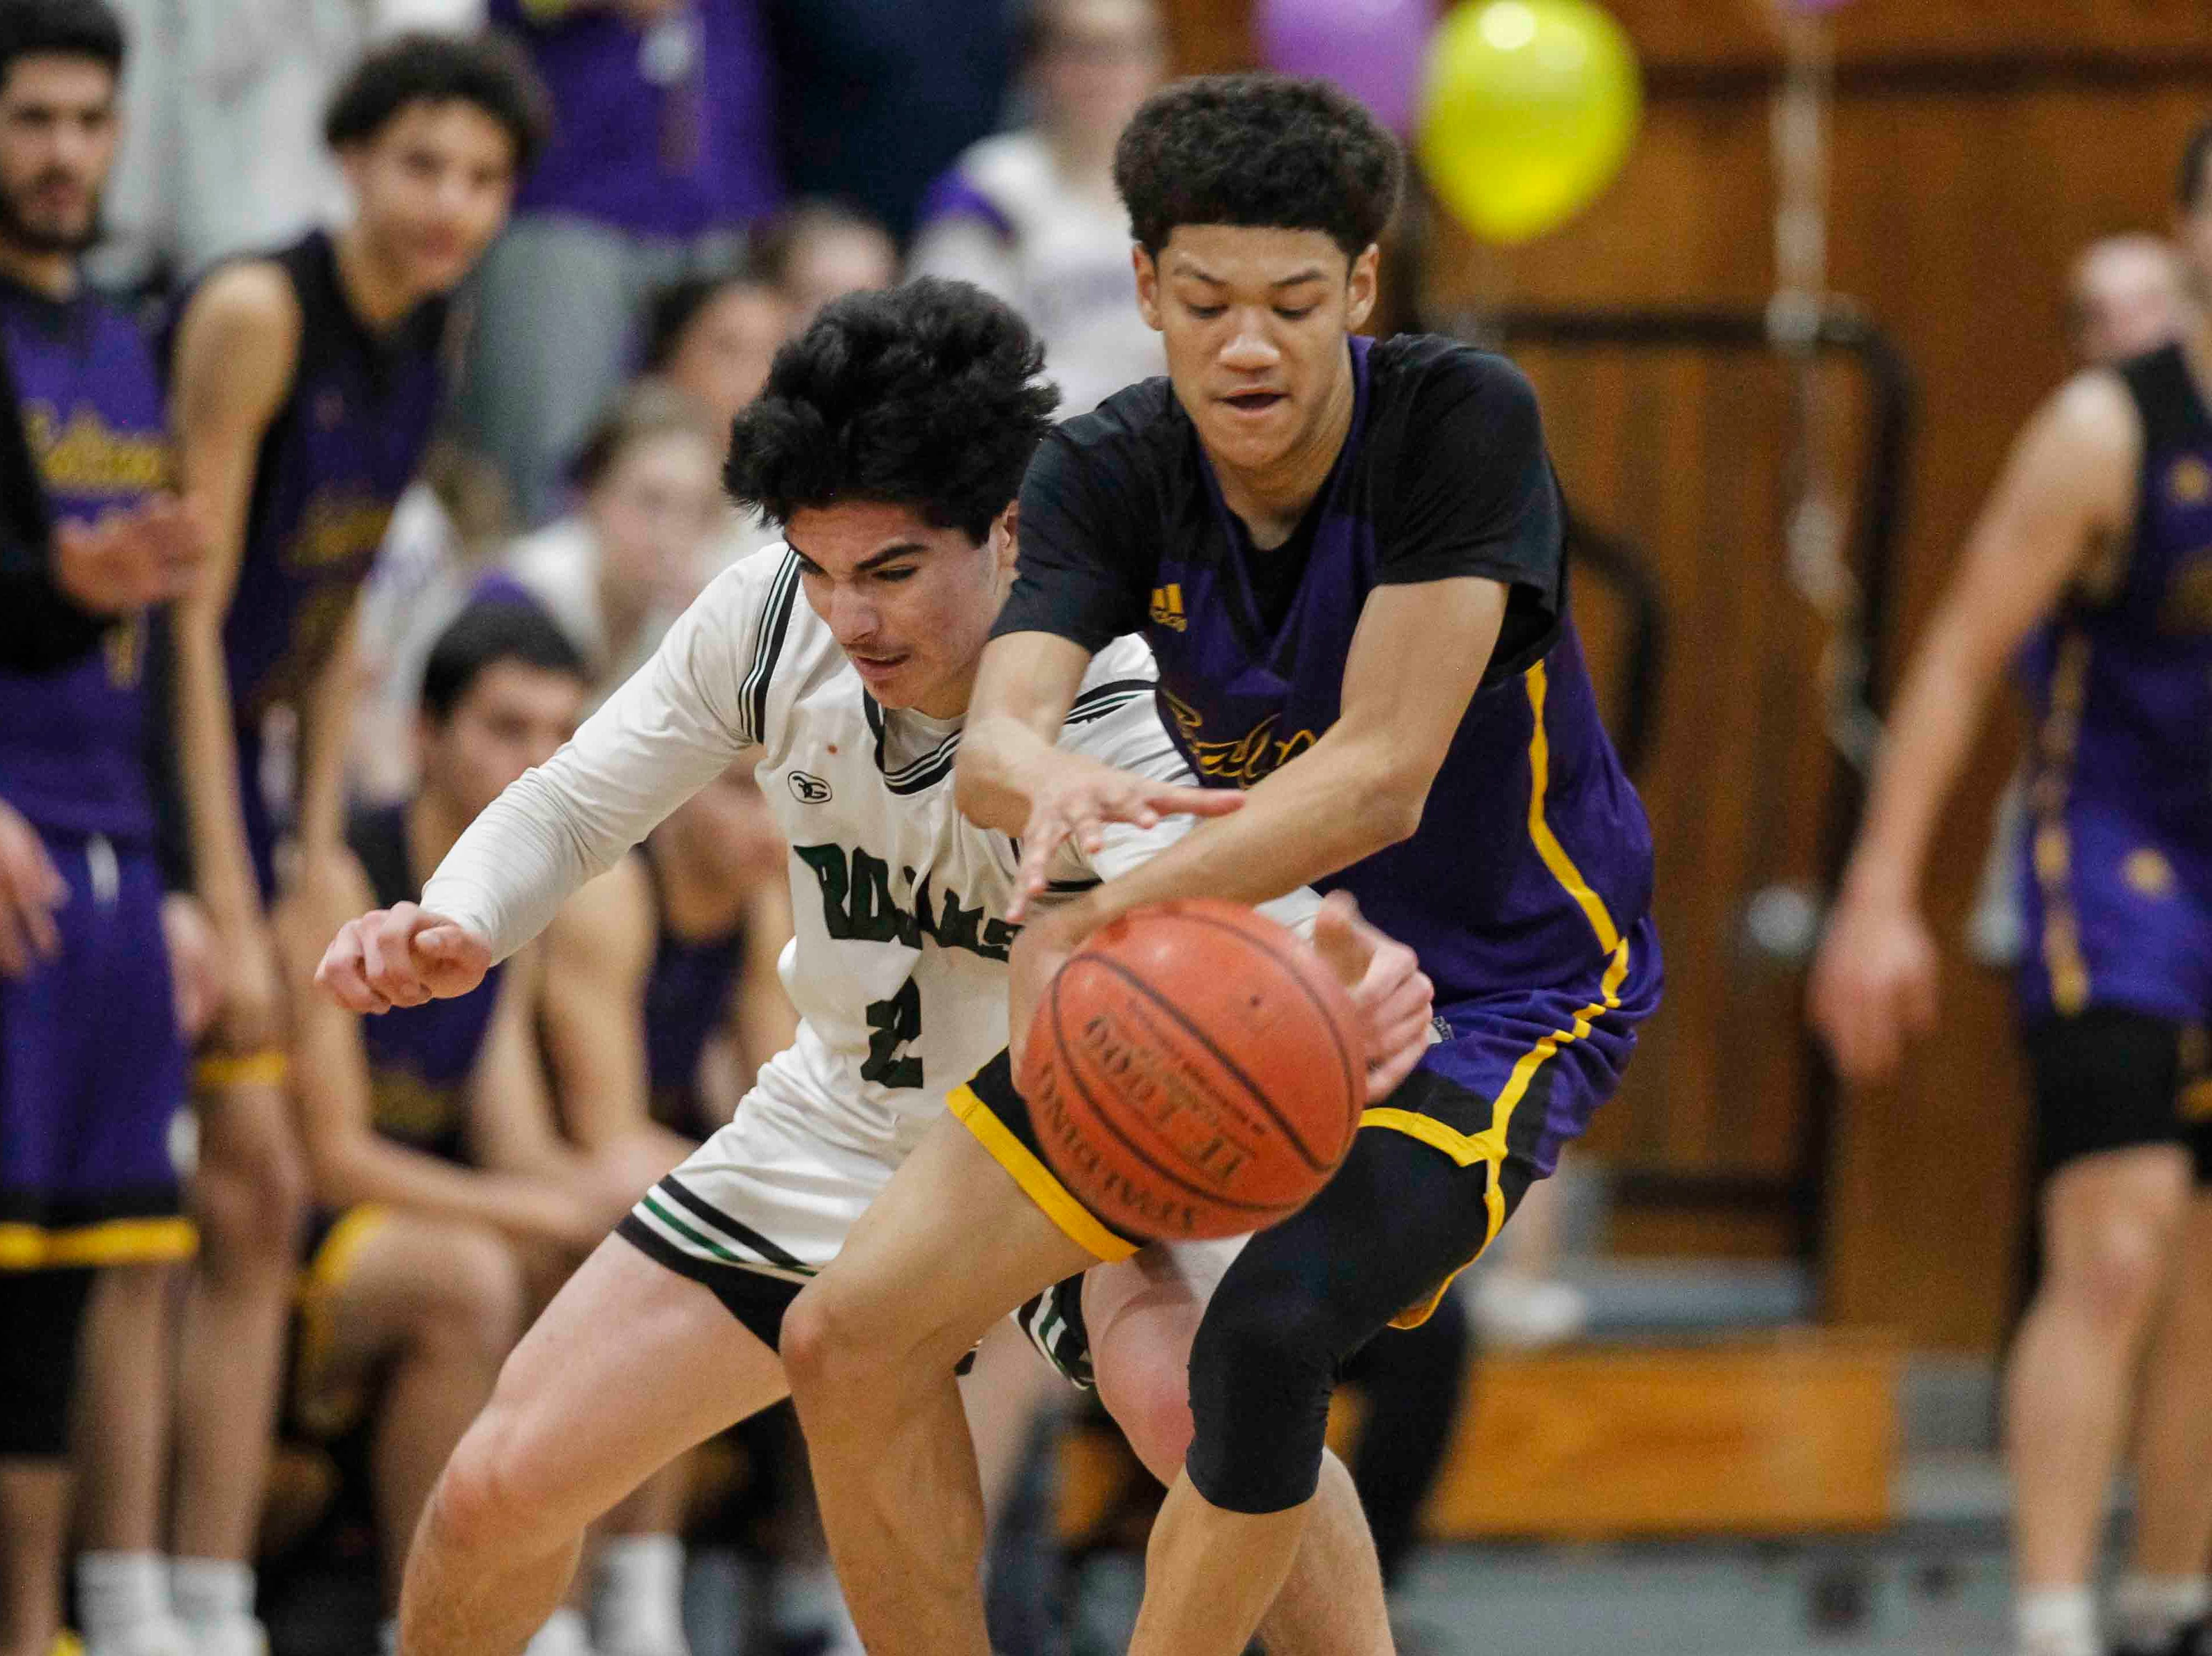 Cross-town rivals in action during an 2019 CIF Central Coast Section Boys Basketball Playoffs - Division I game between the Alisal Trojans and the Salinas Cowboys in which the Cowboys defeated the Trojans 67-56 at Alisal High School on February 16, 2019 in Salinas, Calif.